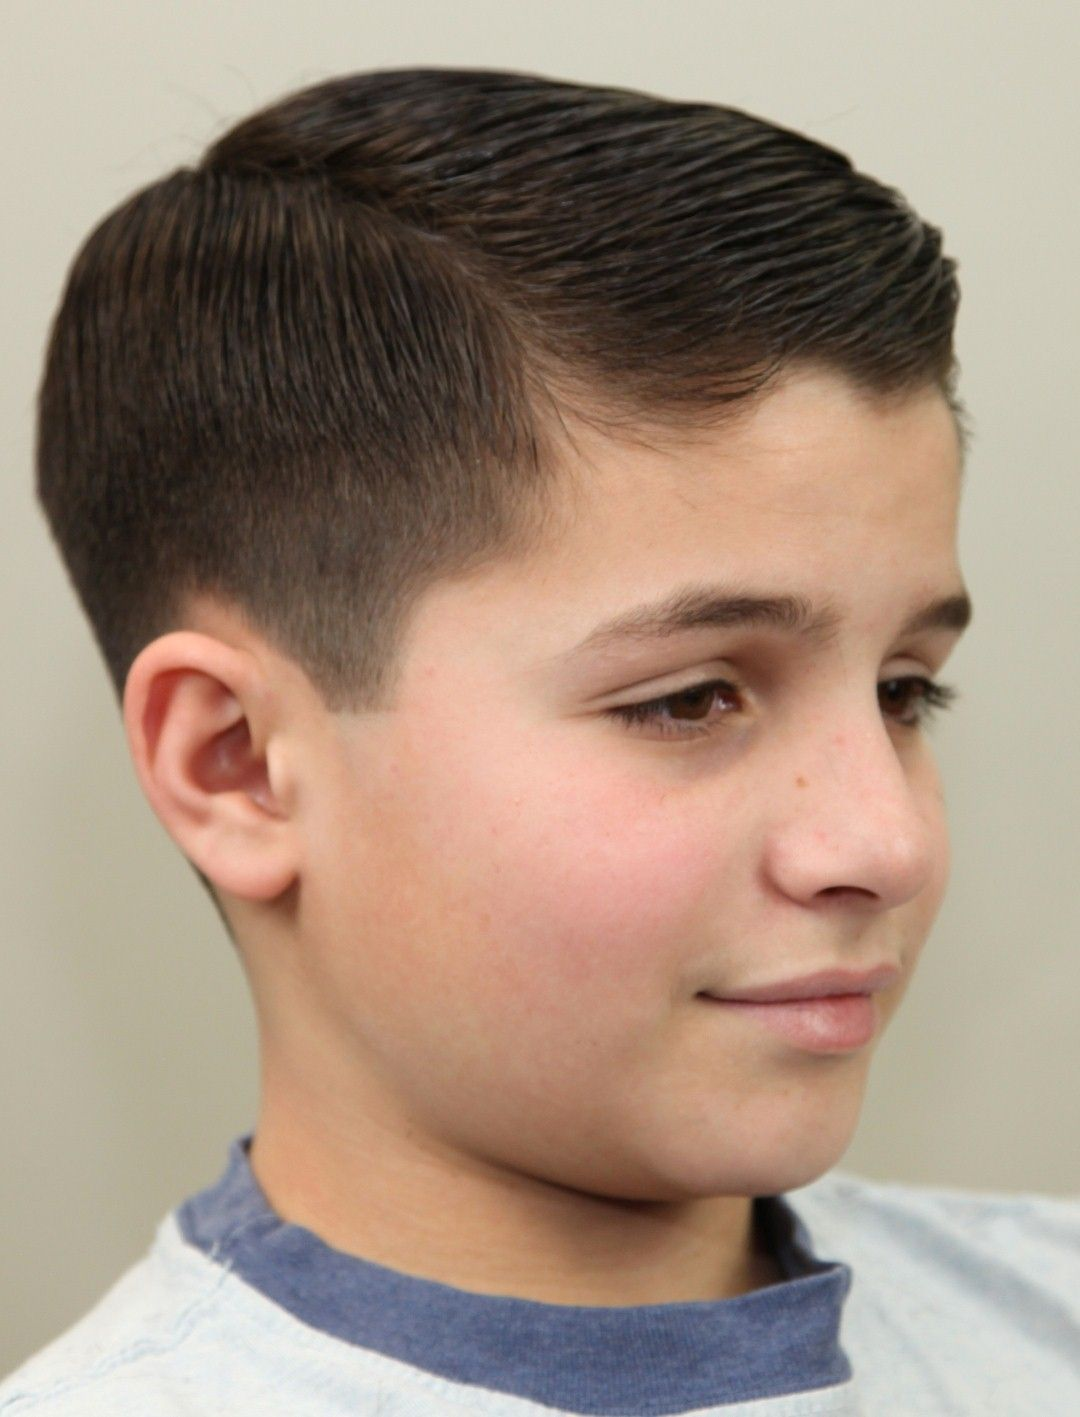 Pin on boy hair styles